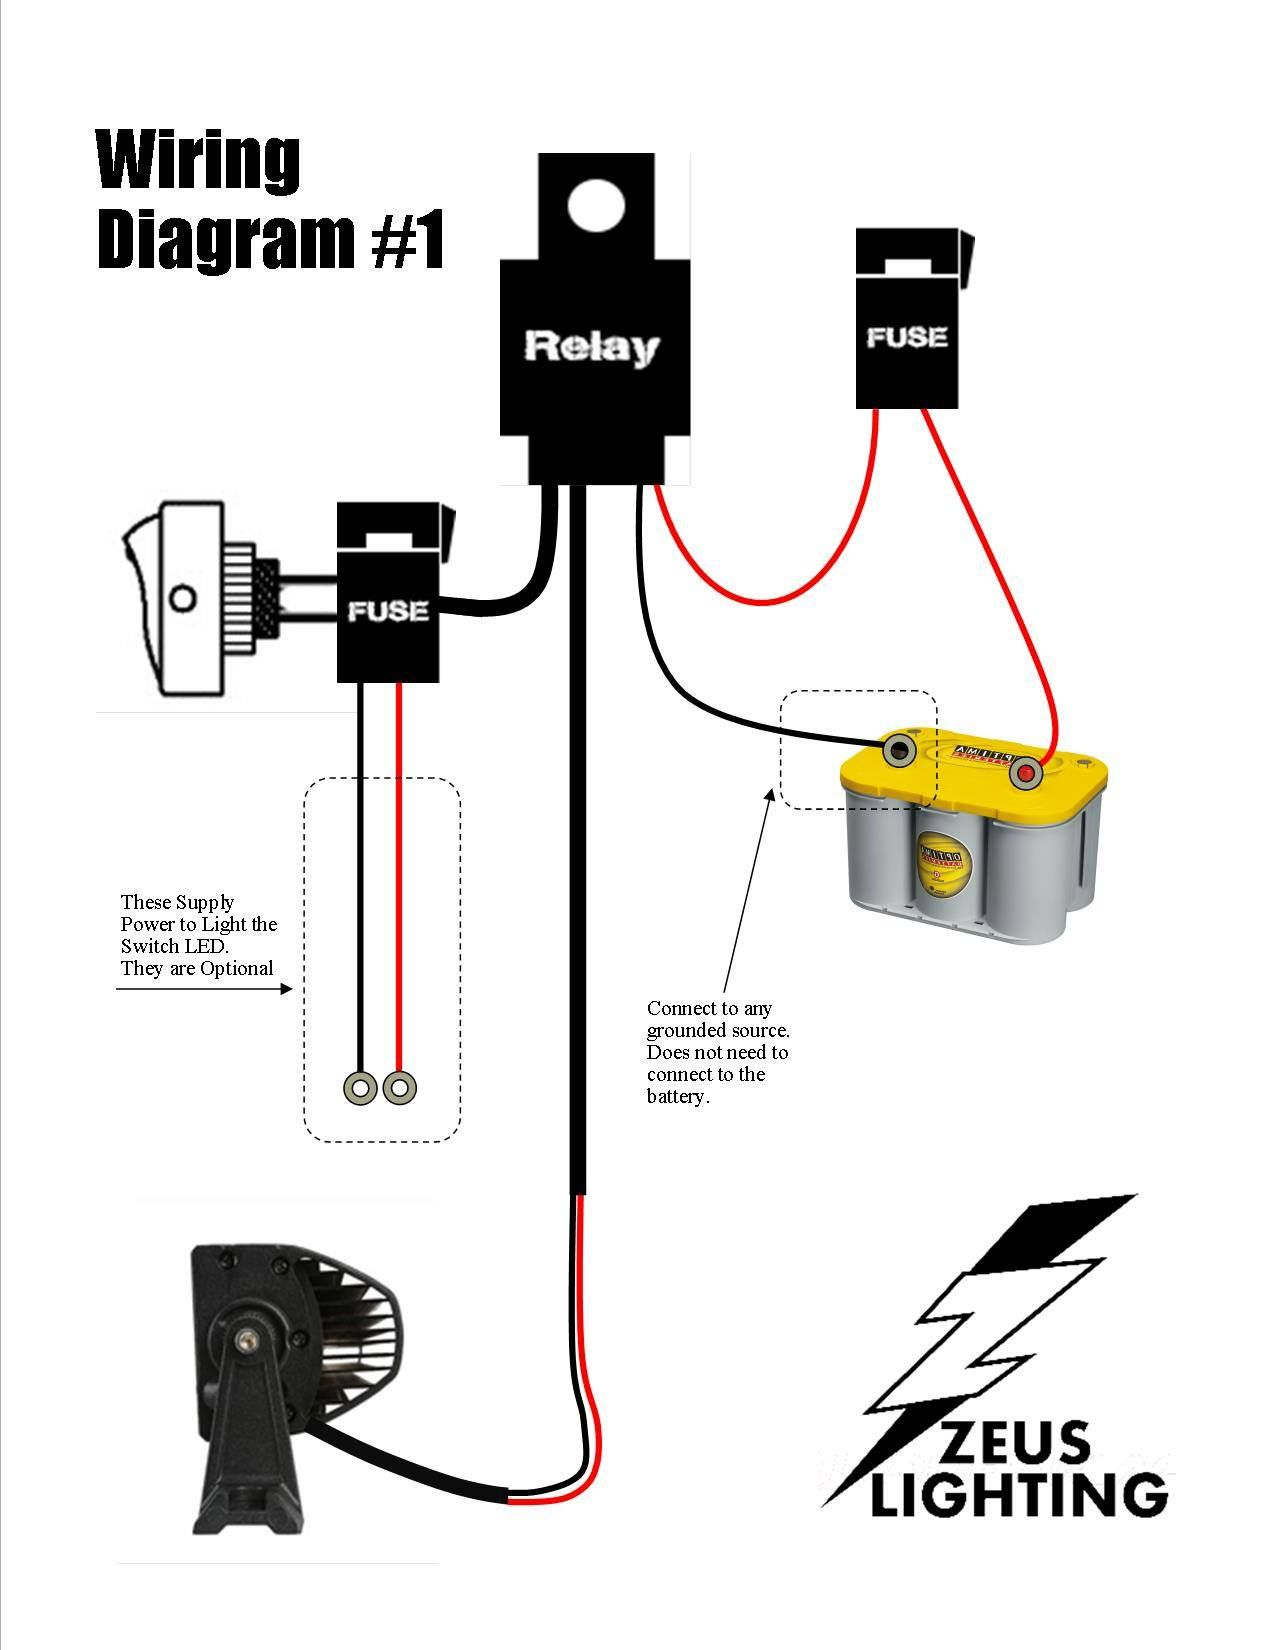 7b0b7aea0a7ad4ad1a755e54db3487b7 essentials to keep in the truck (packed) glockner auto EZ Wiring Harness Diagram Chevy at gsmx.co